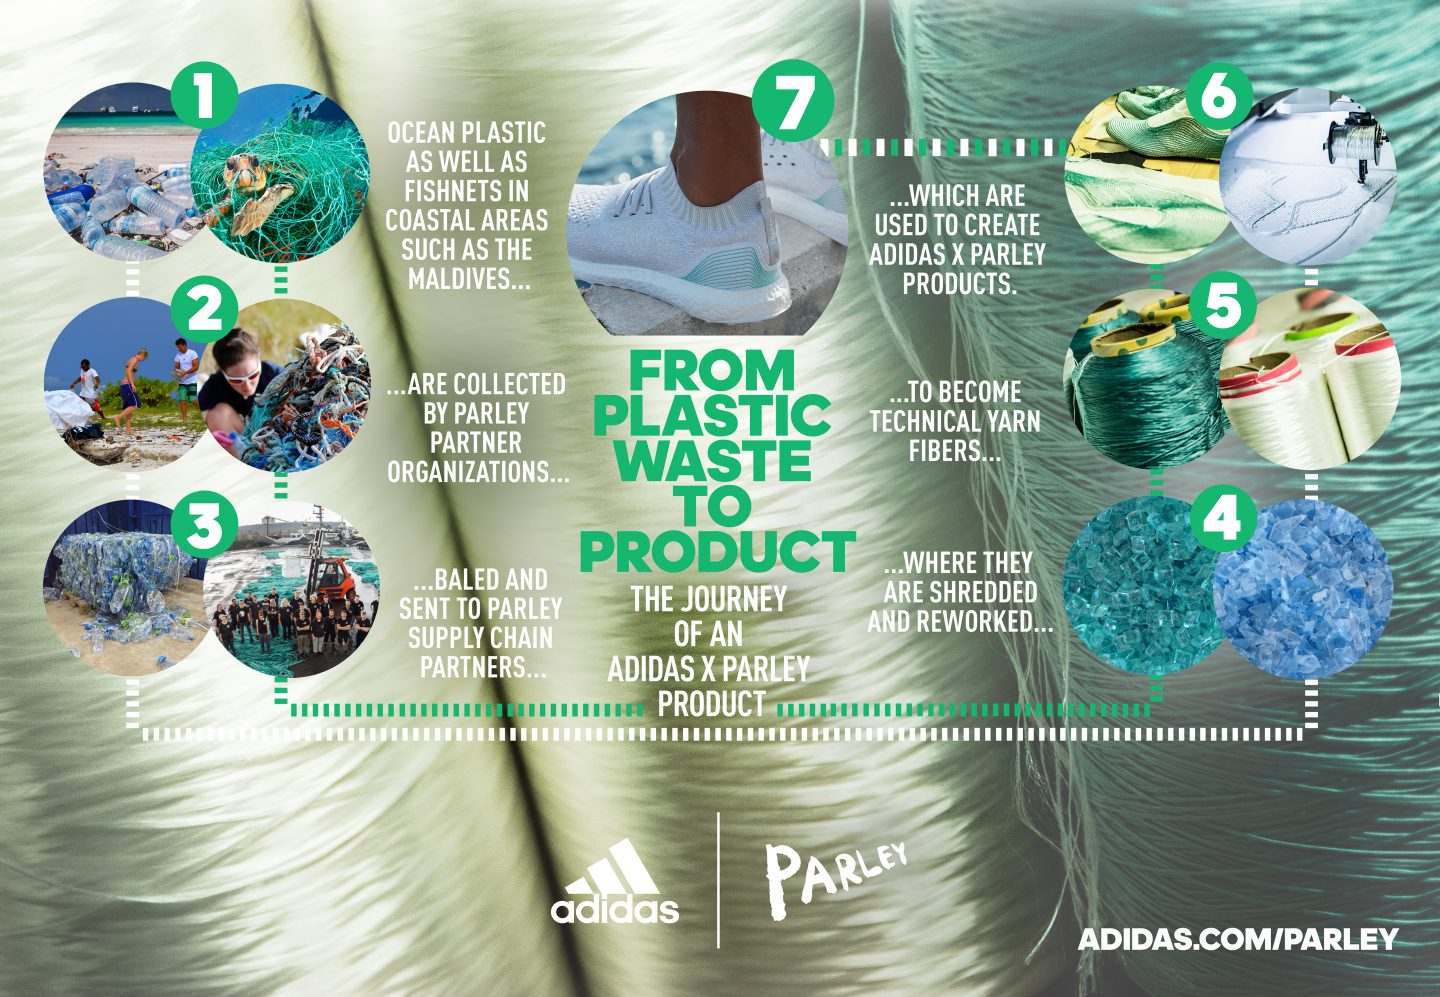 Parley for the Oceans adidas infographic supply chain plastic waste product ocean plastic